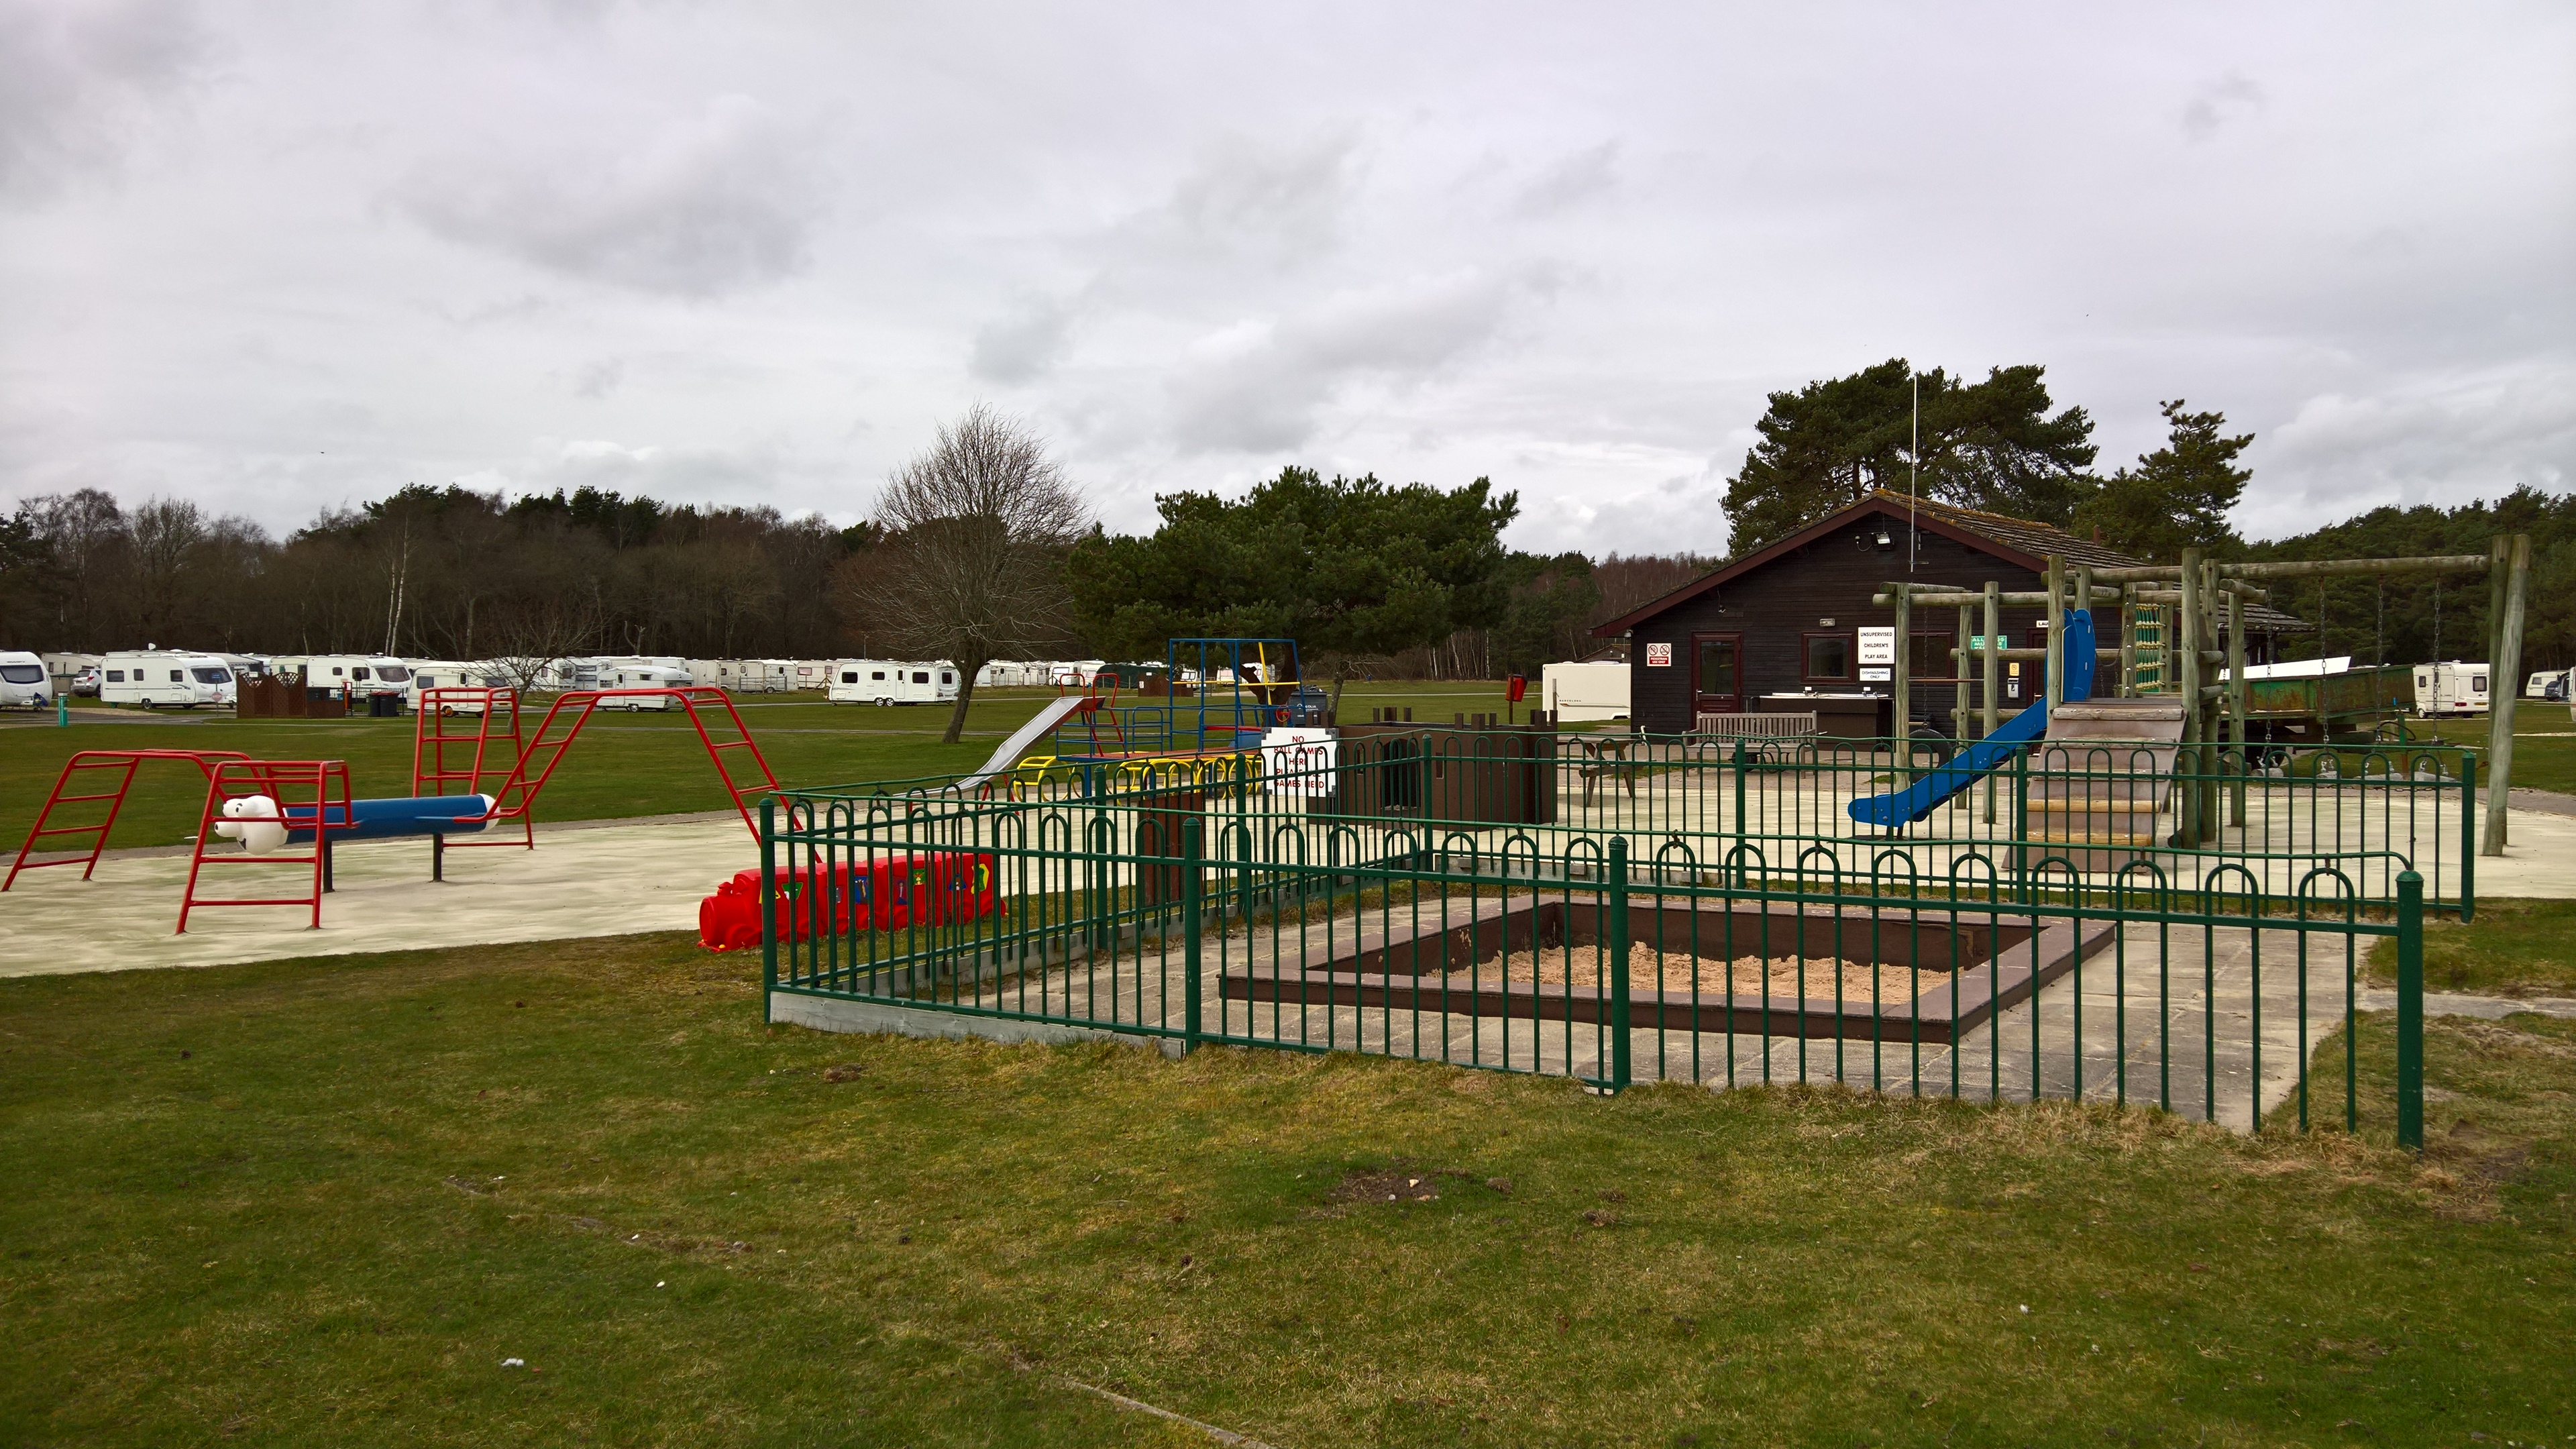 The play area and sandpit